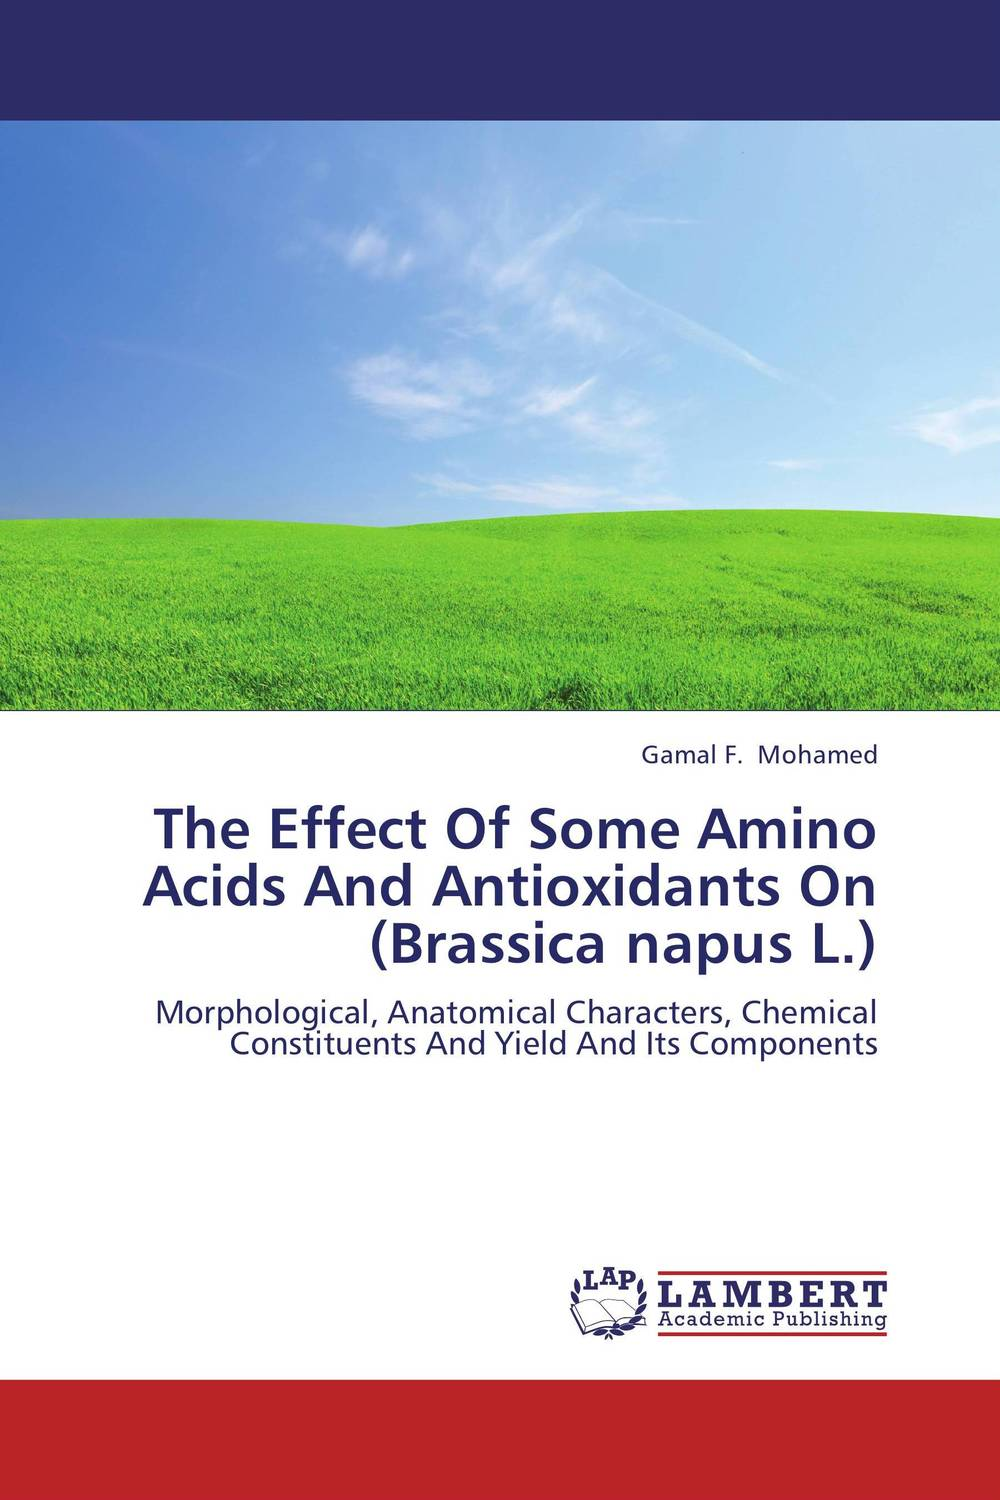 The Effect Of Some Amino Acids And Antioxidants On (Brassica napus L.) tamer el moghazy ahmad mahmoud abd el halem el gamal and amel gaber salem effect of some postharvest treatments on spear and peppermint herbs